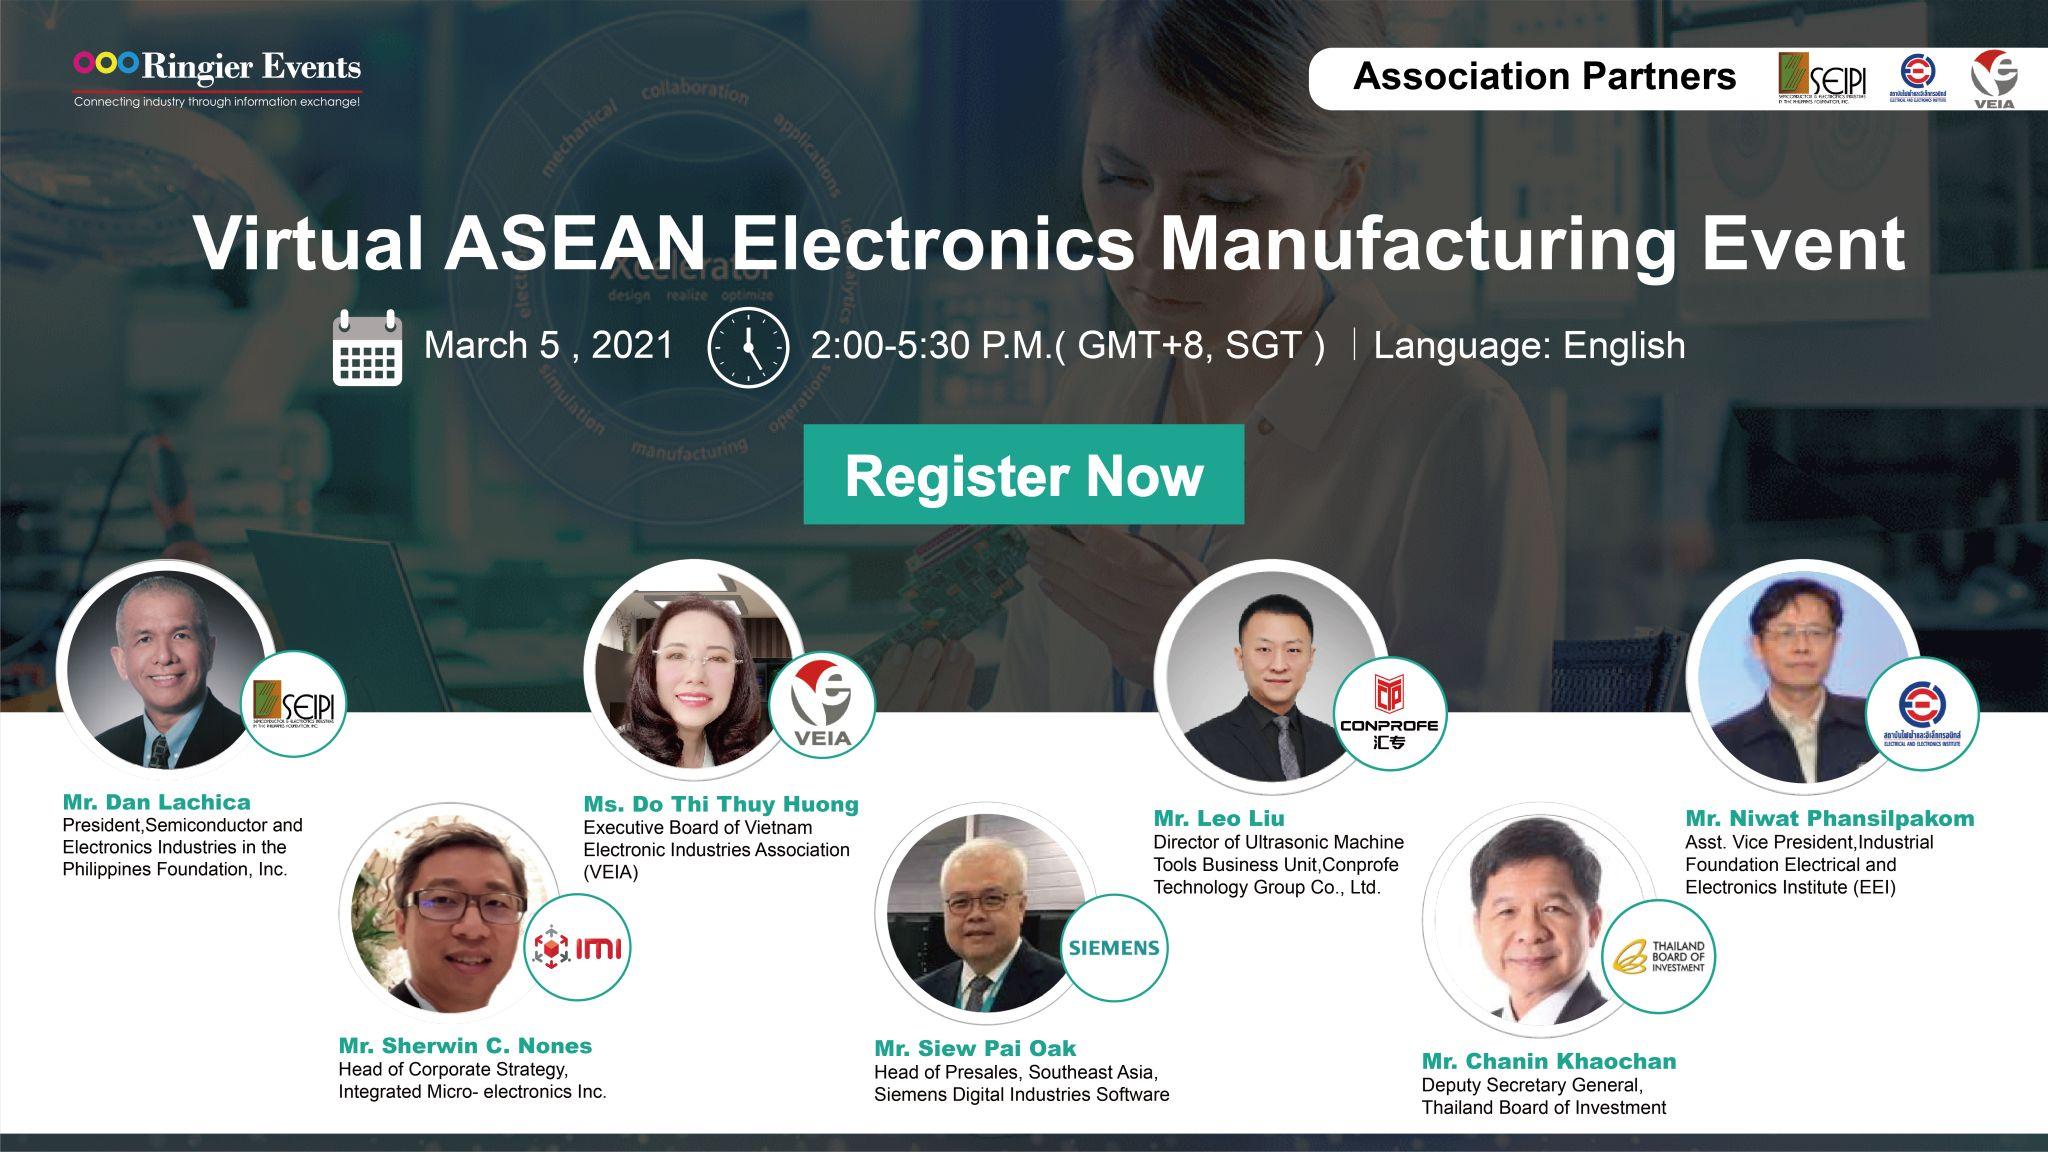 ASEAN Electronics Manufacturing Event